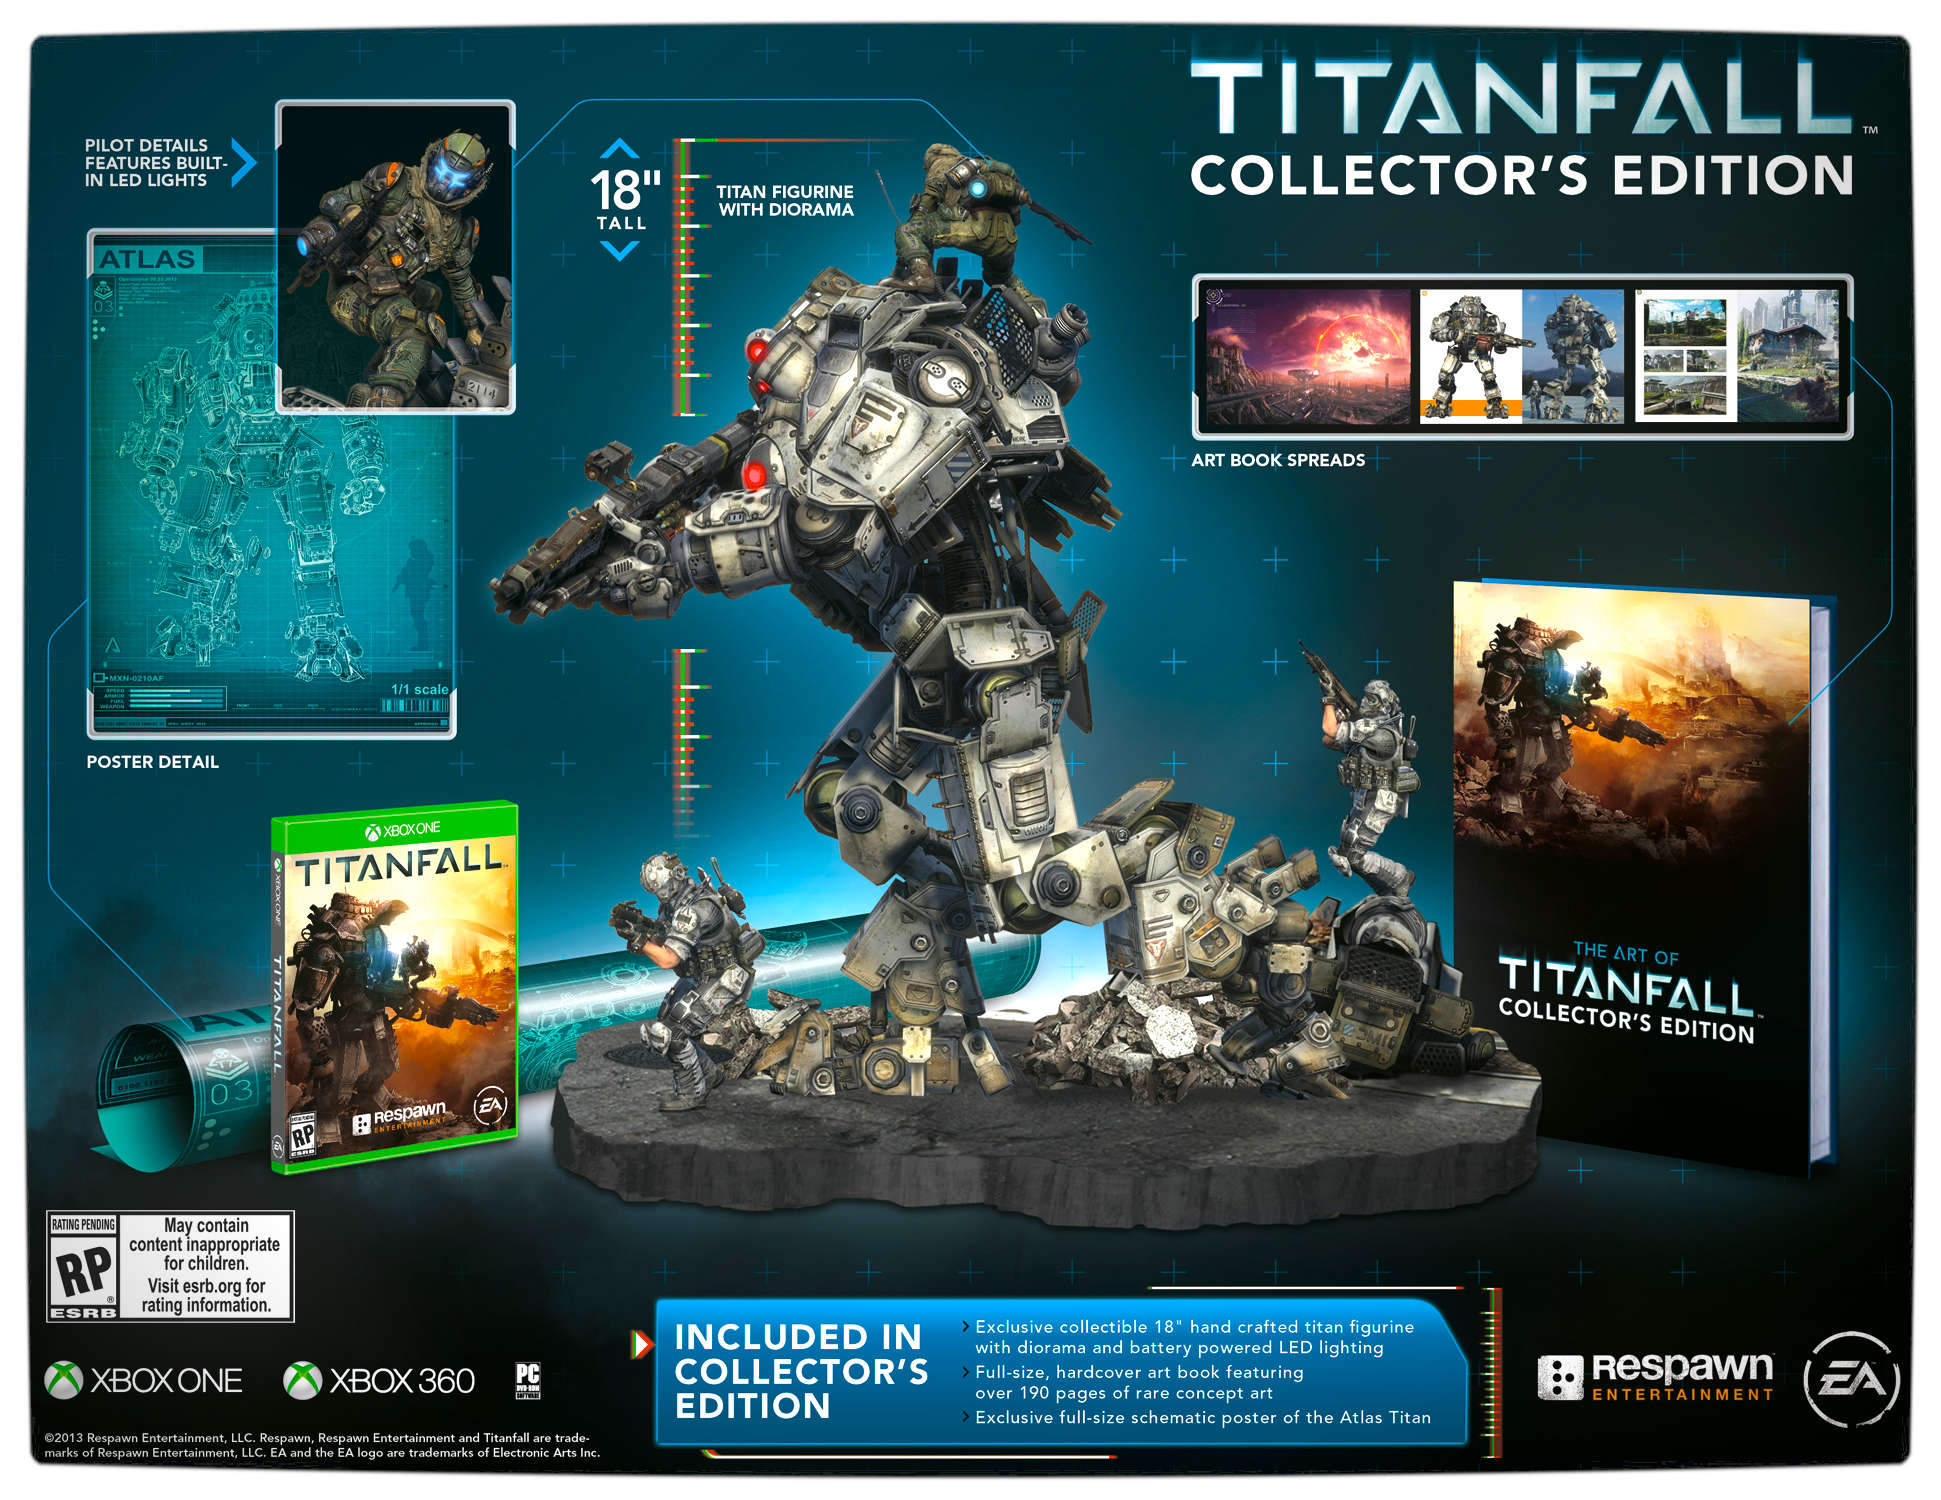 Vamers - Gaming - Titanfall Collectors Edition Detailed - Details